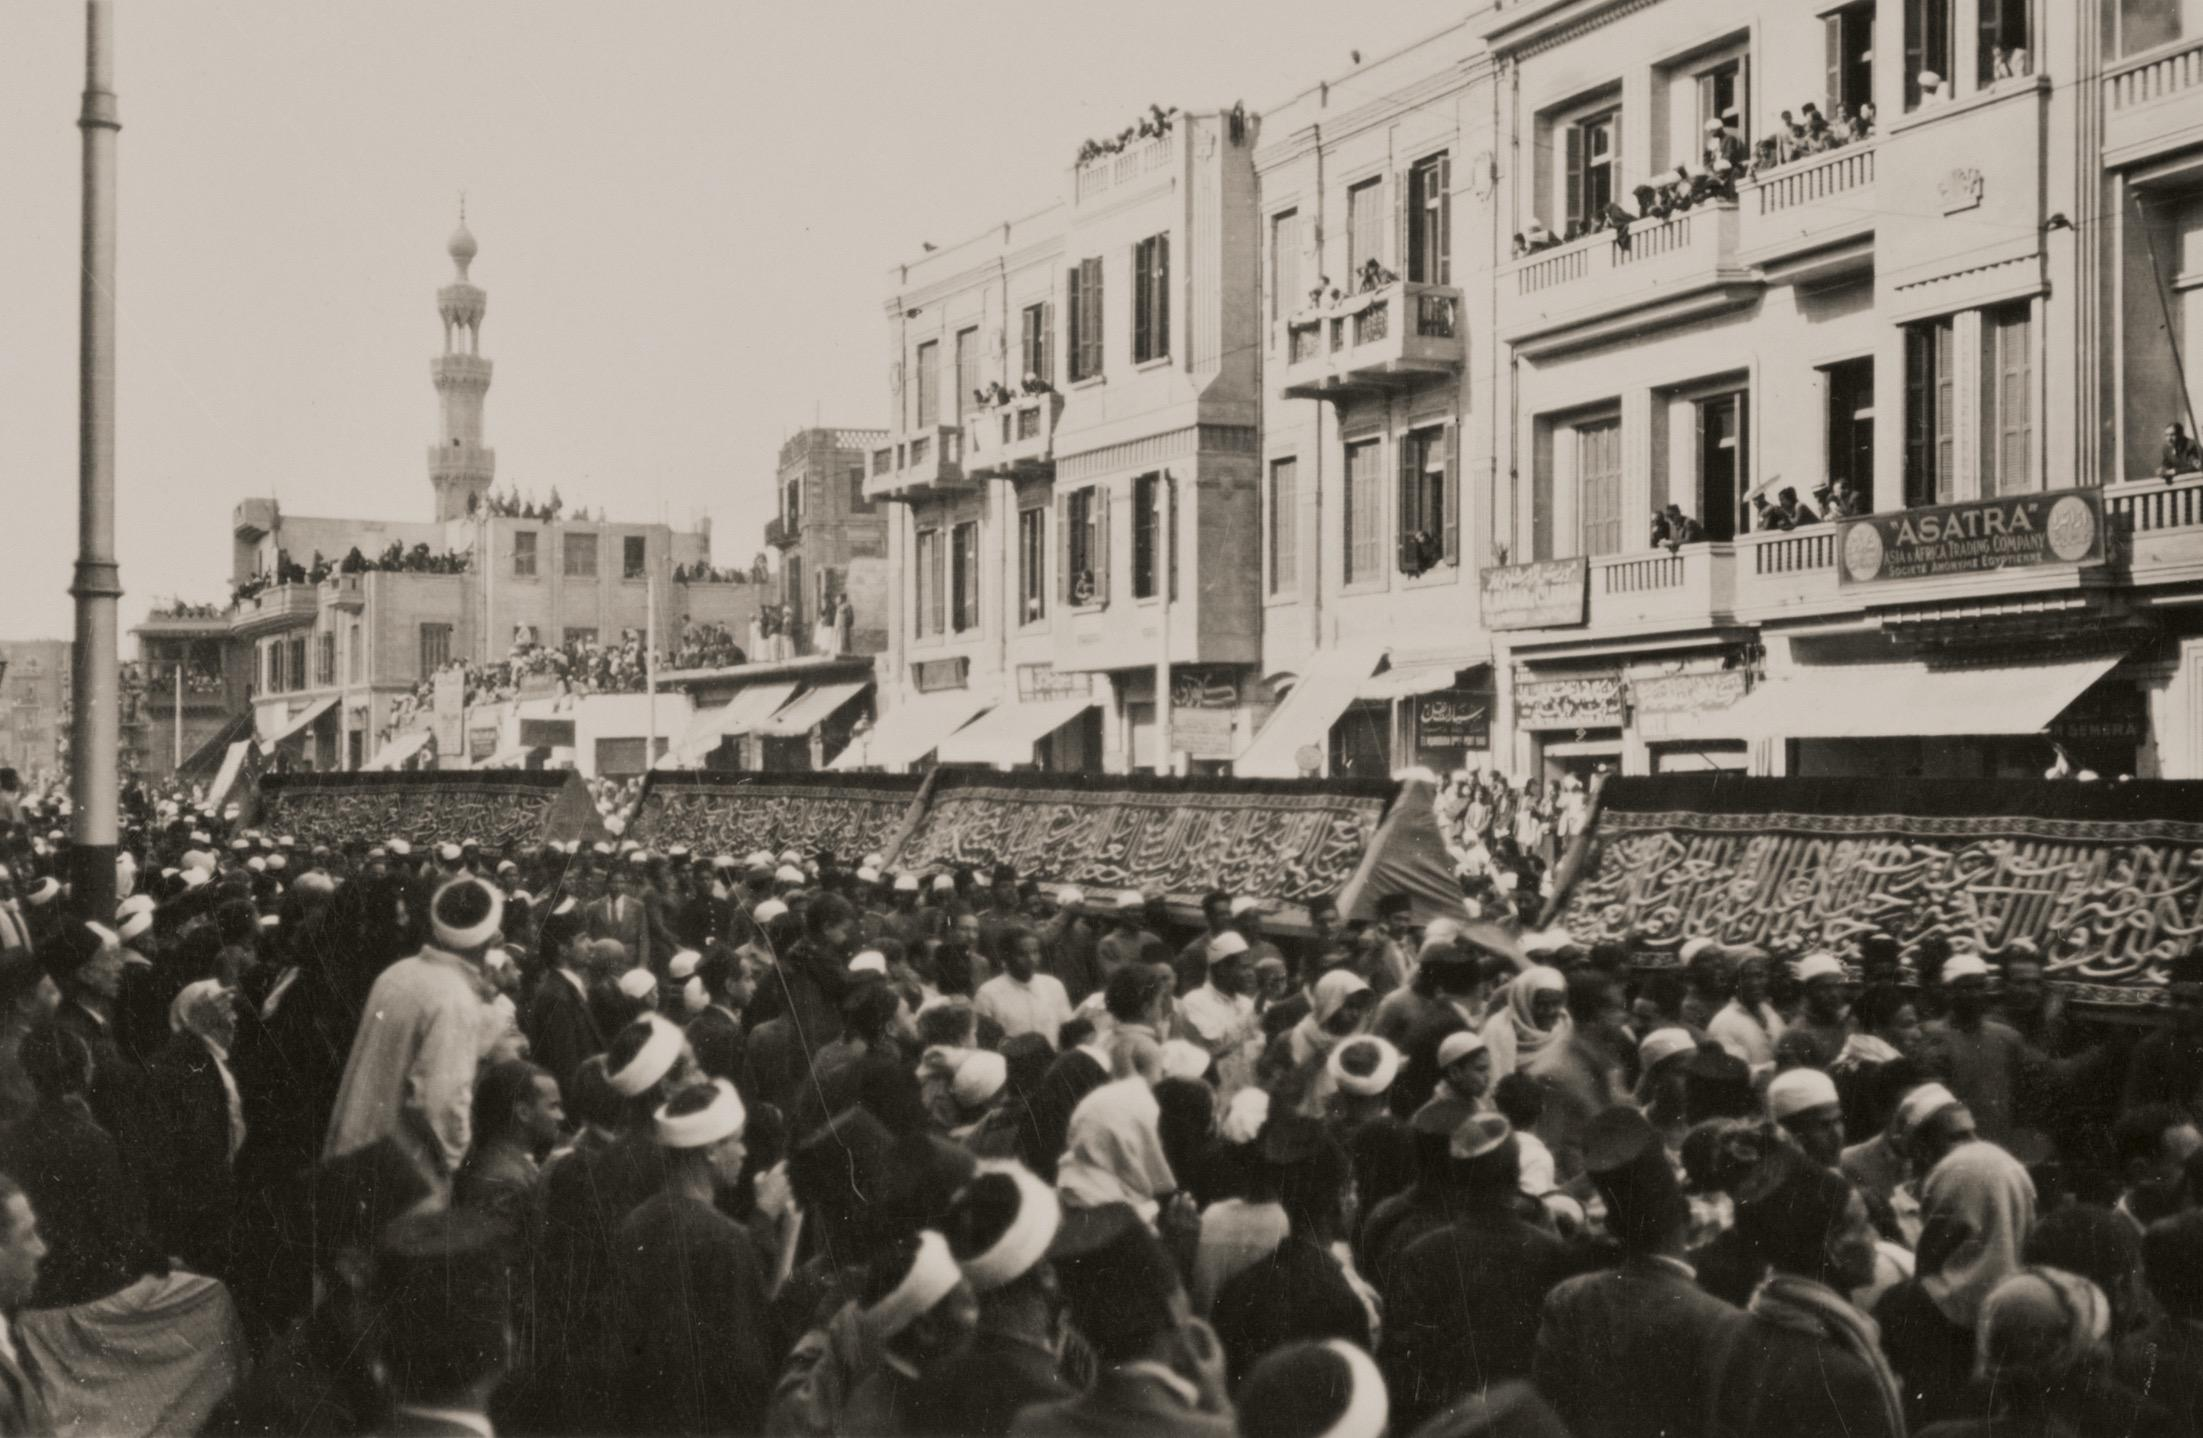 The Procession of the Mahmal and the Kiswah in Cairo